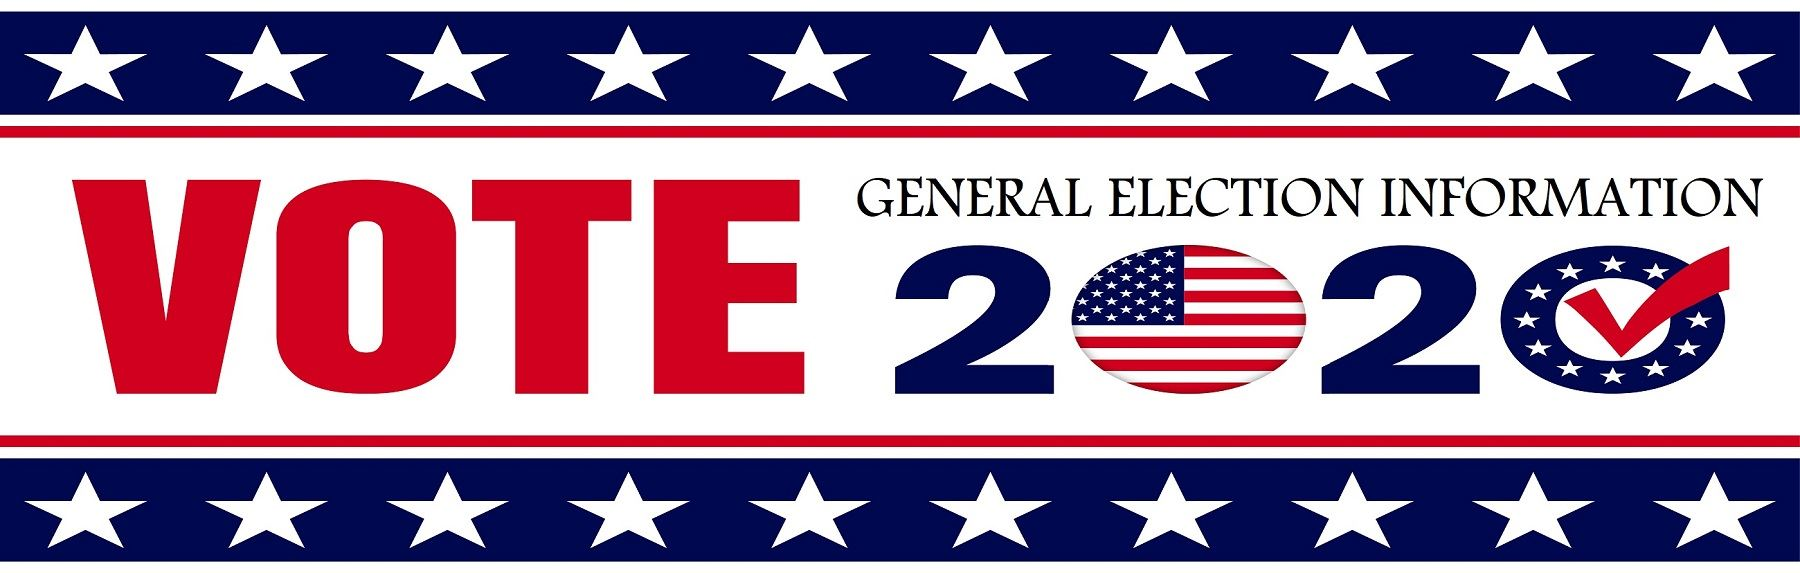 Interior_General Election banner